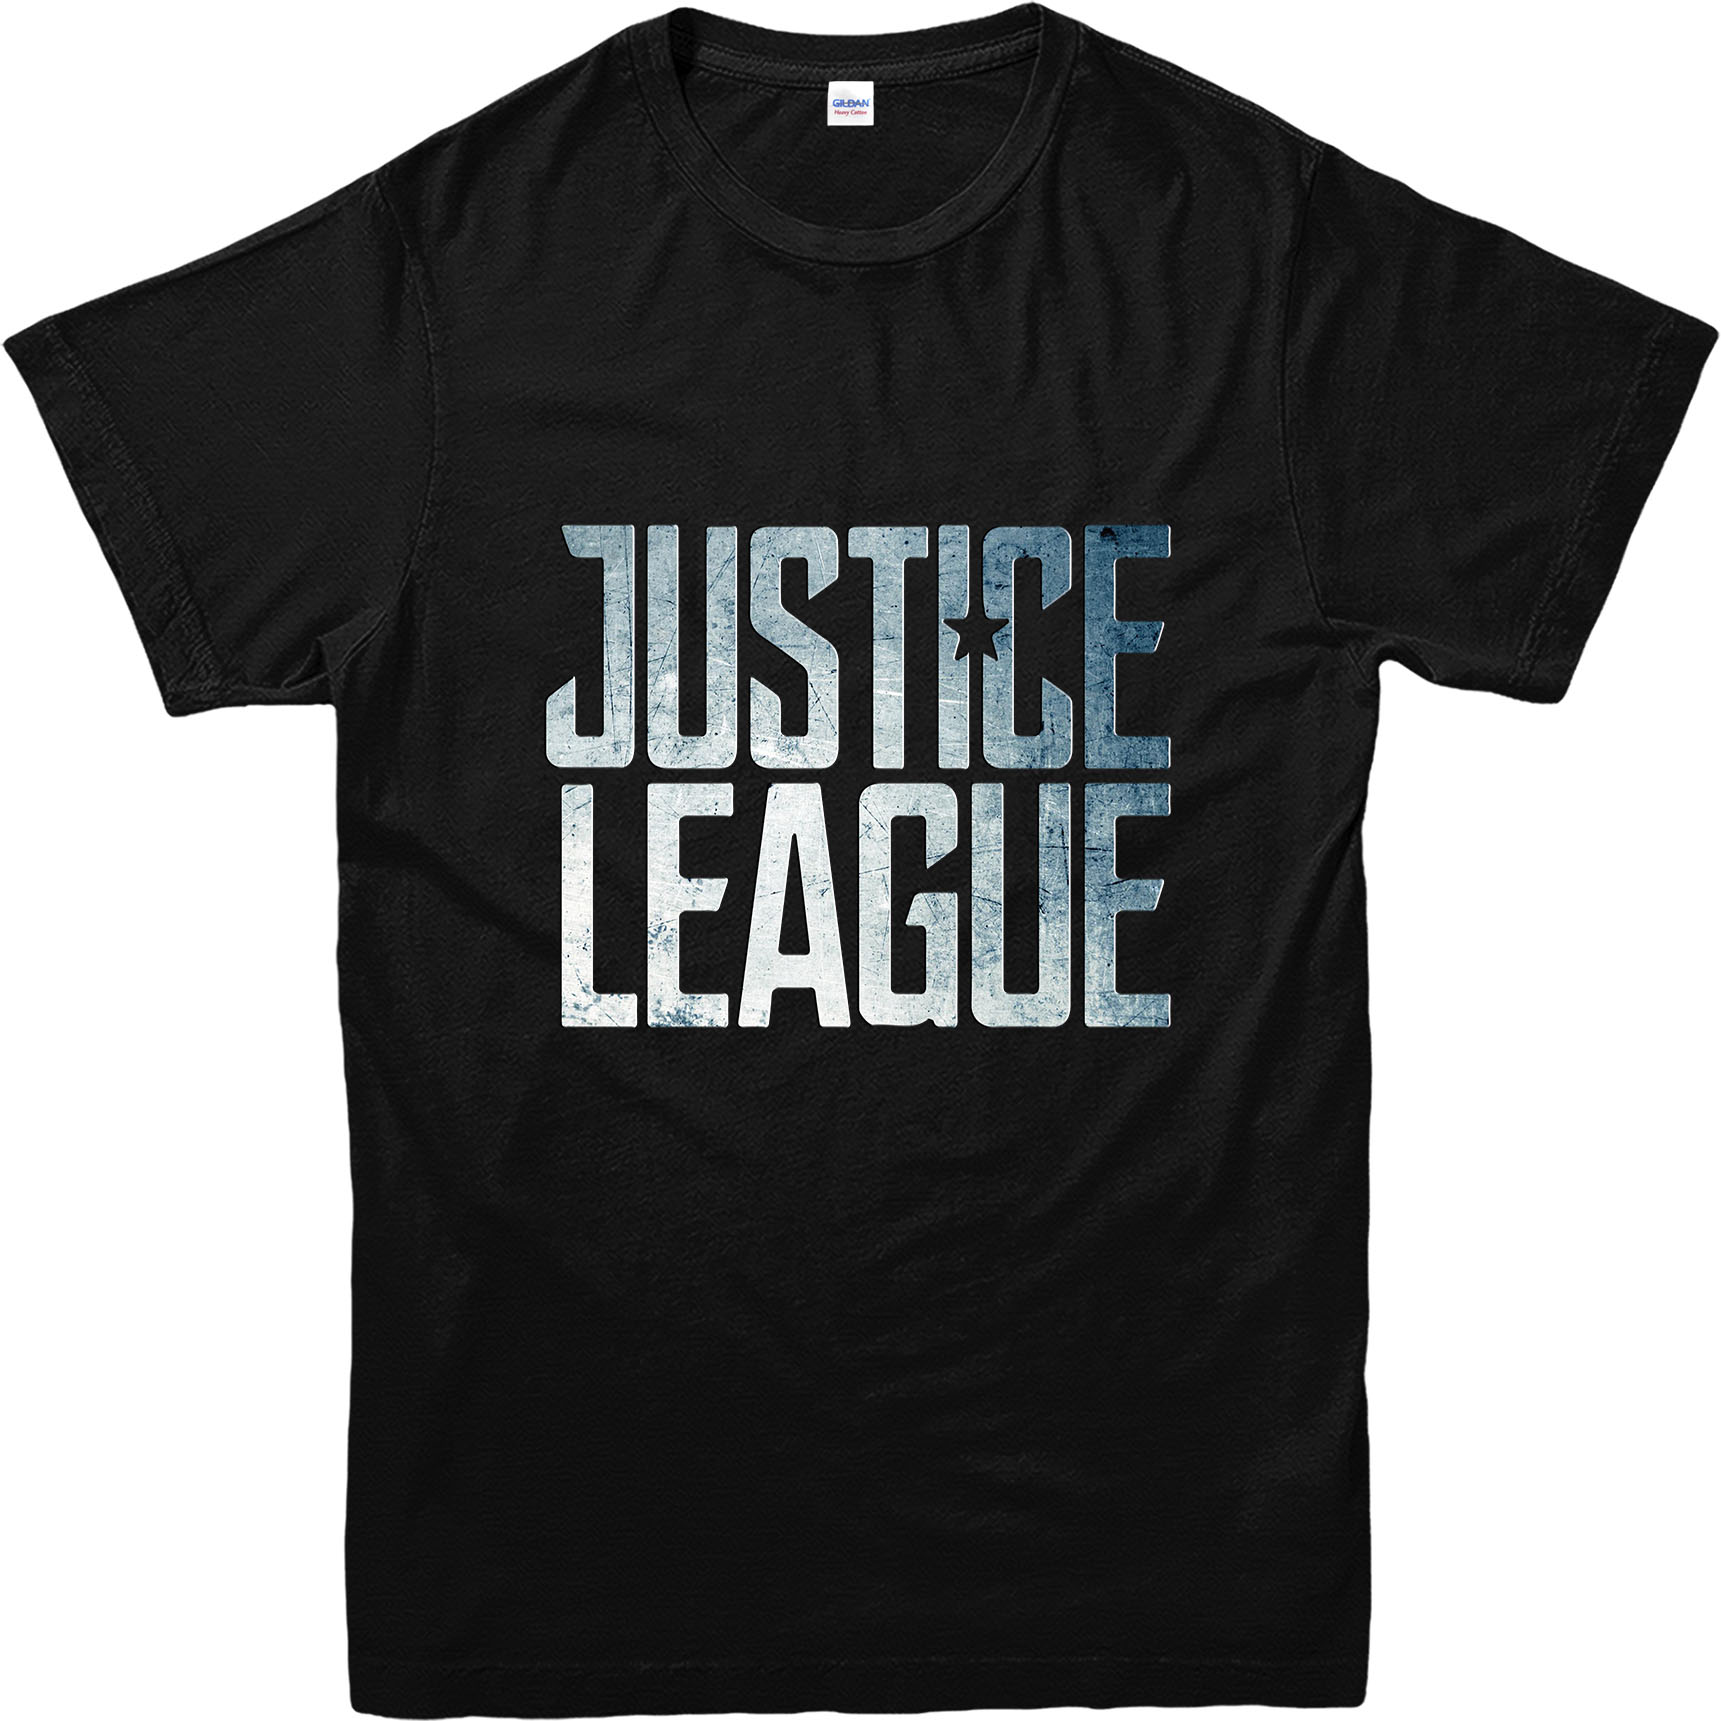 Design t shirt logo online - Justice League T Shirt Logo Comics T Shirt Inspired Design Top Short